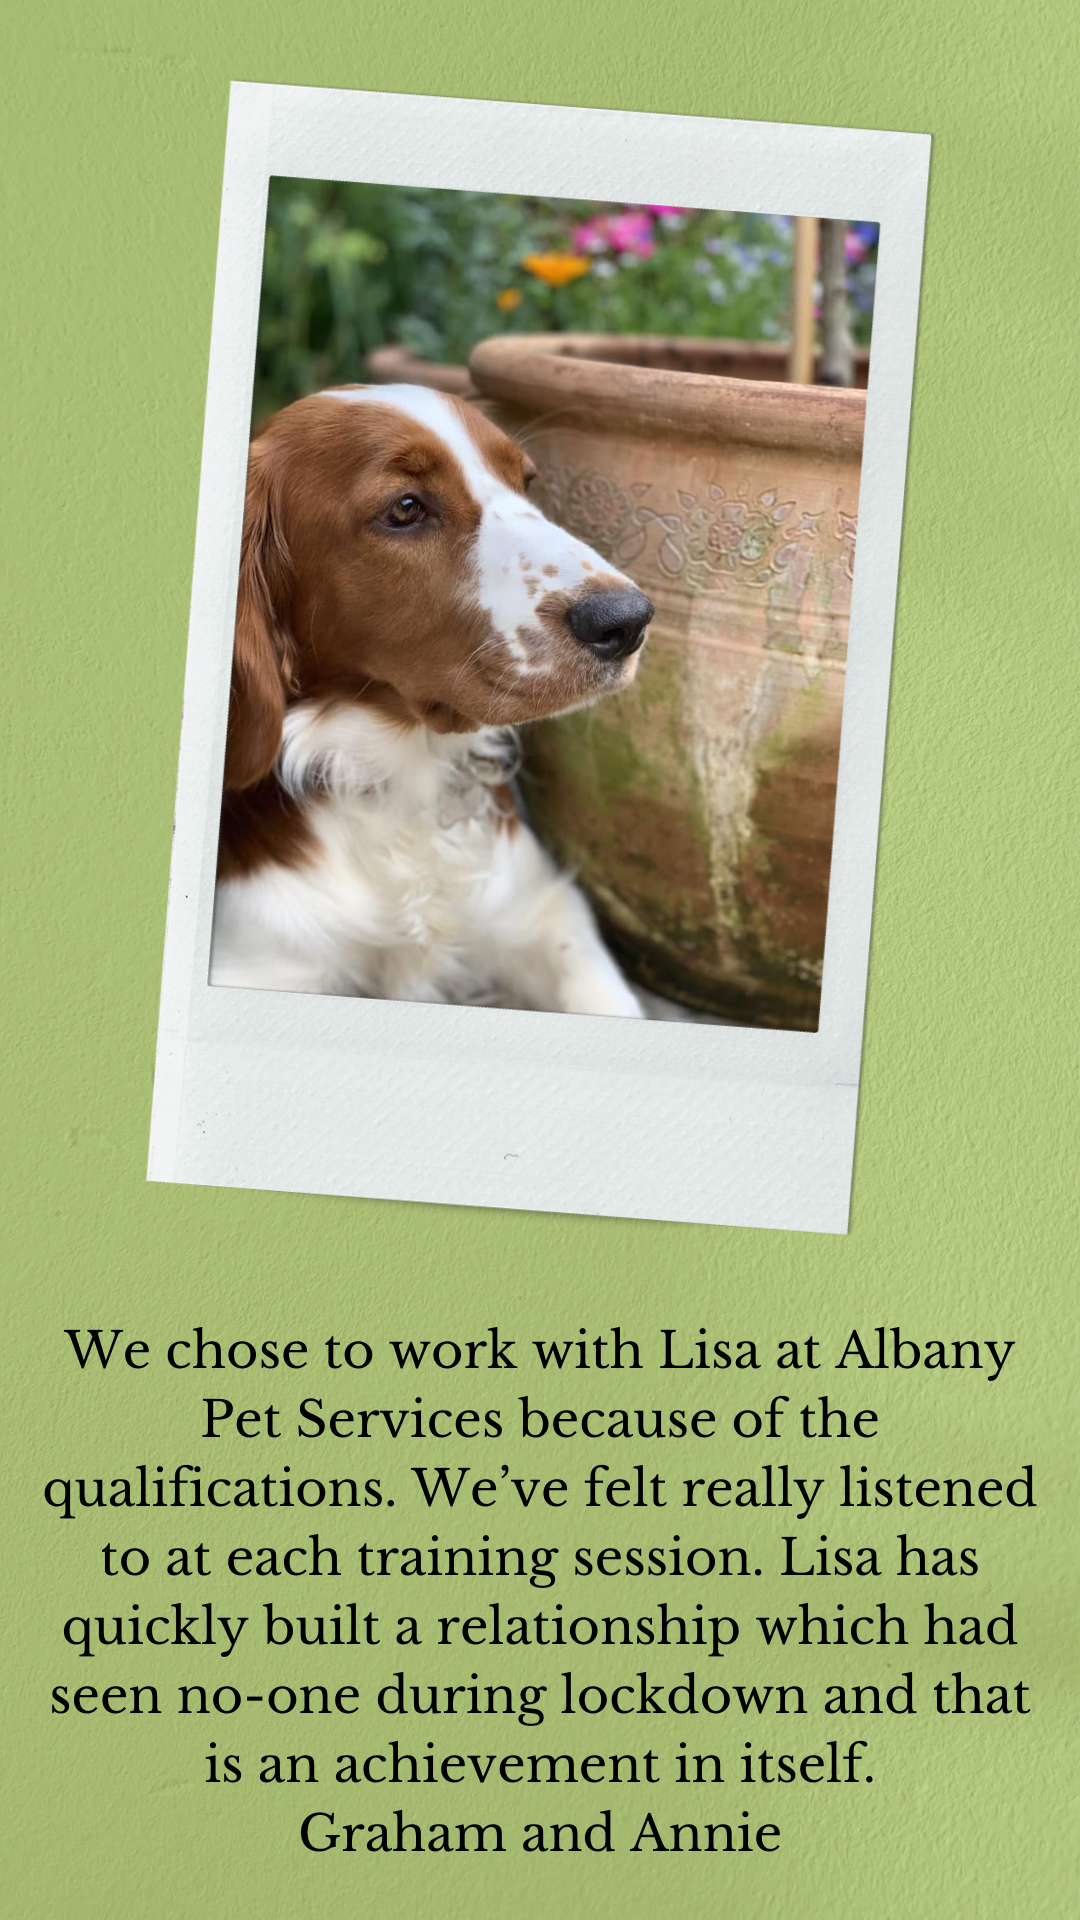 We chose to work with Lisa at Albany Pet Services because of the qualifications. We've felt really listened to at each training session. Lisa has quickly built a relationship which had seen no-one during lockdown and that is an achievement in itself.